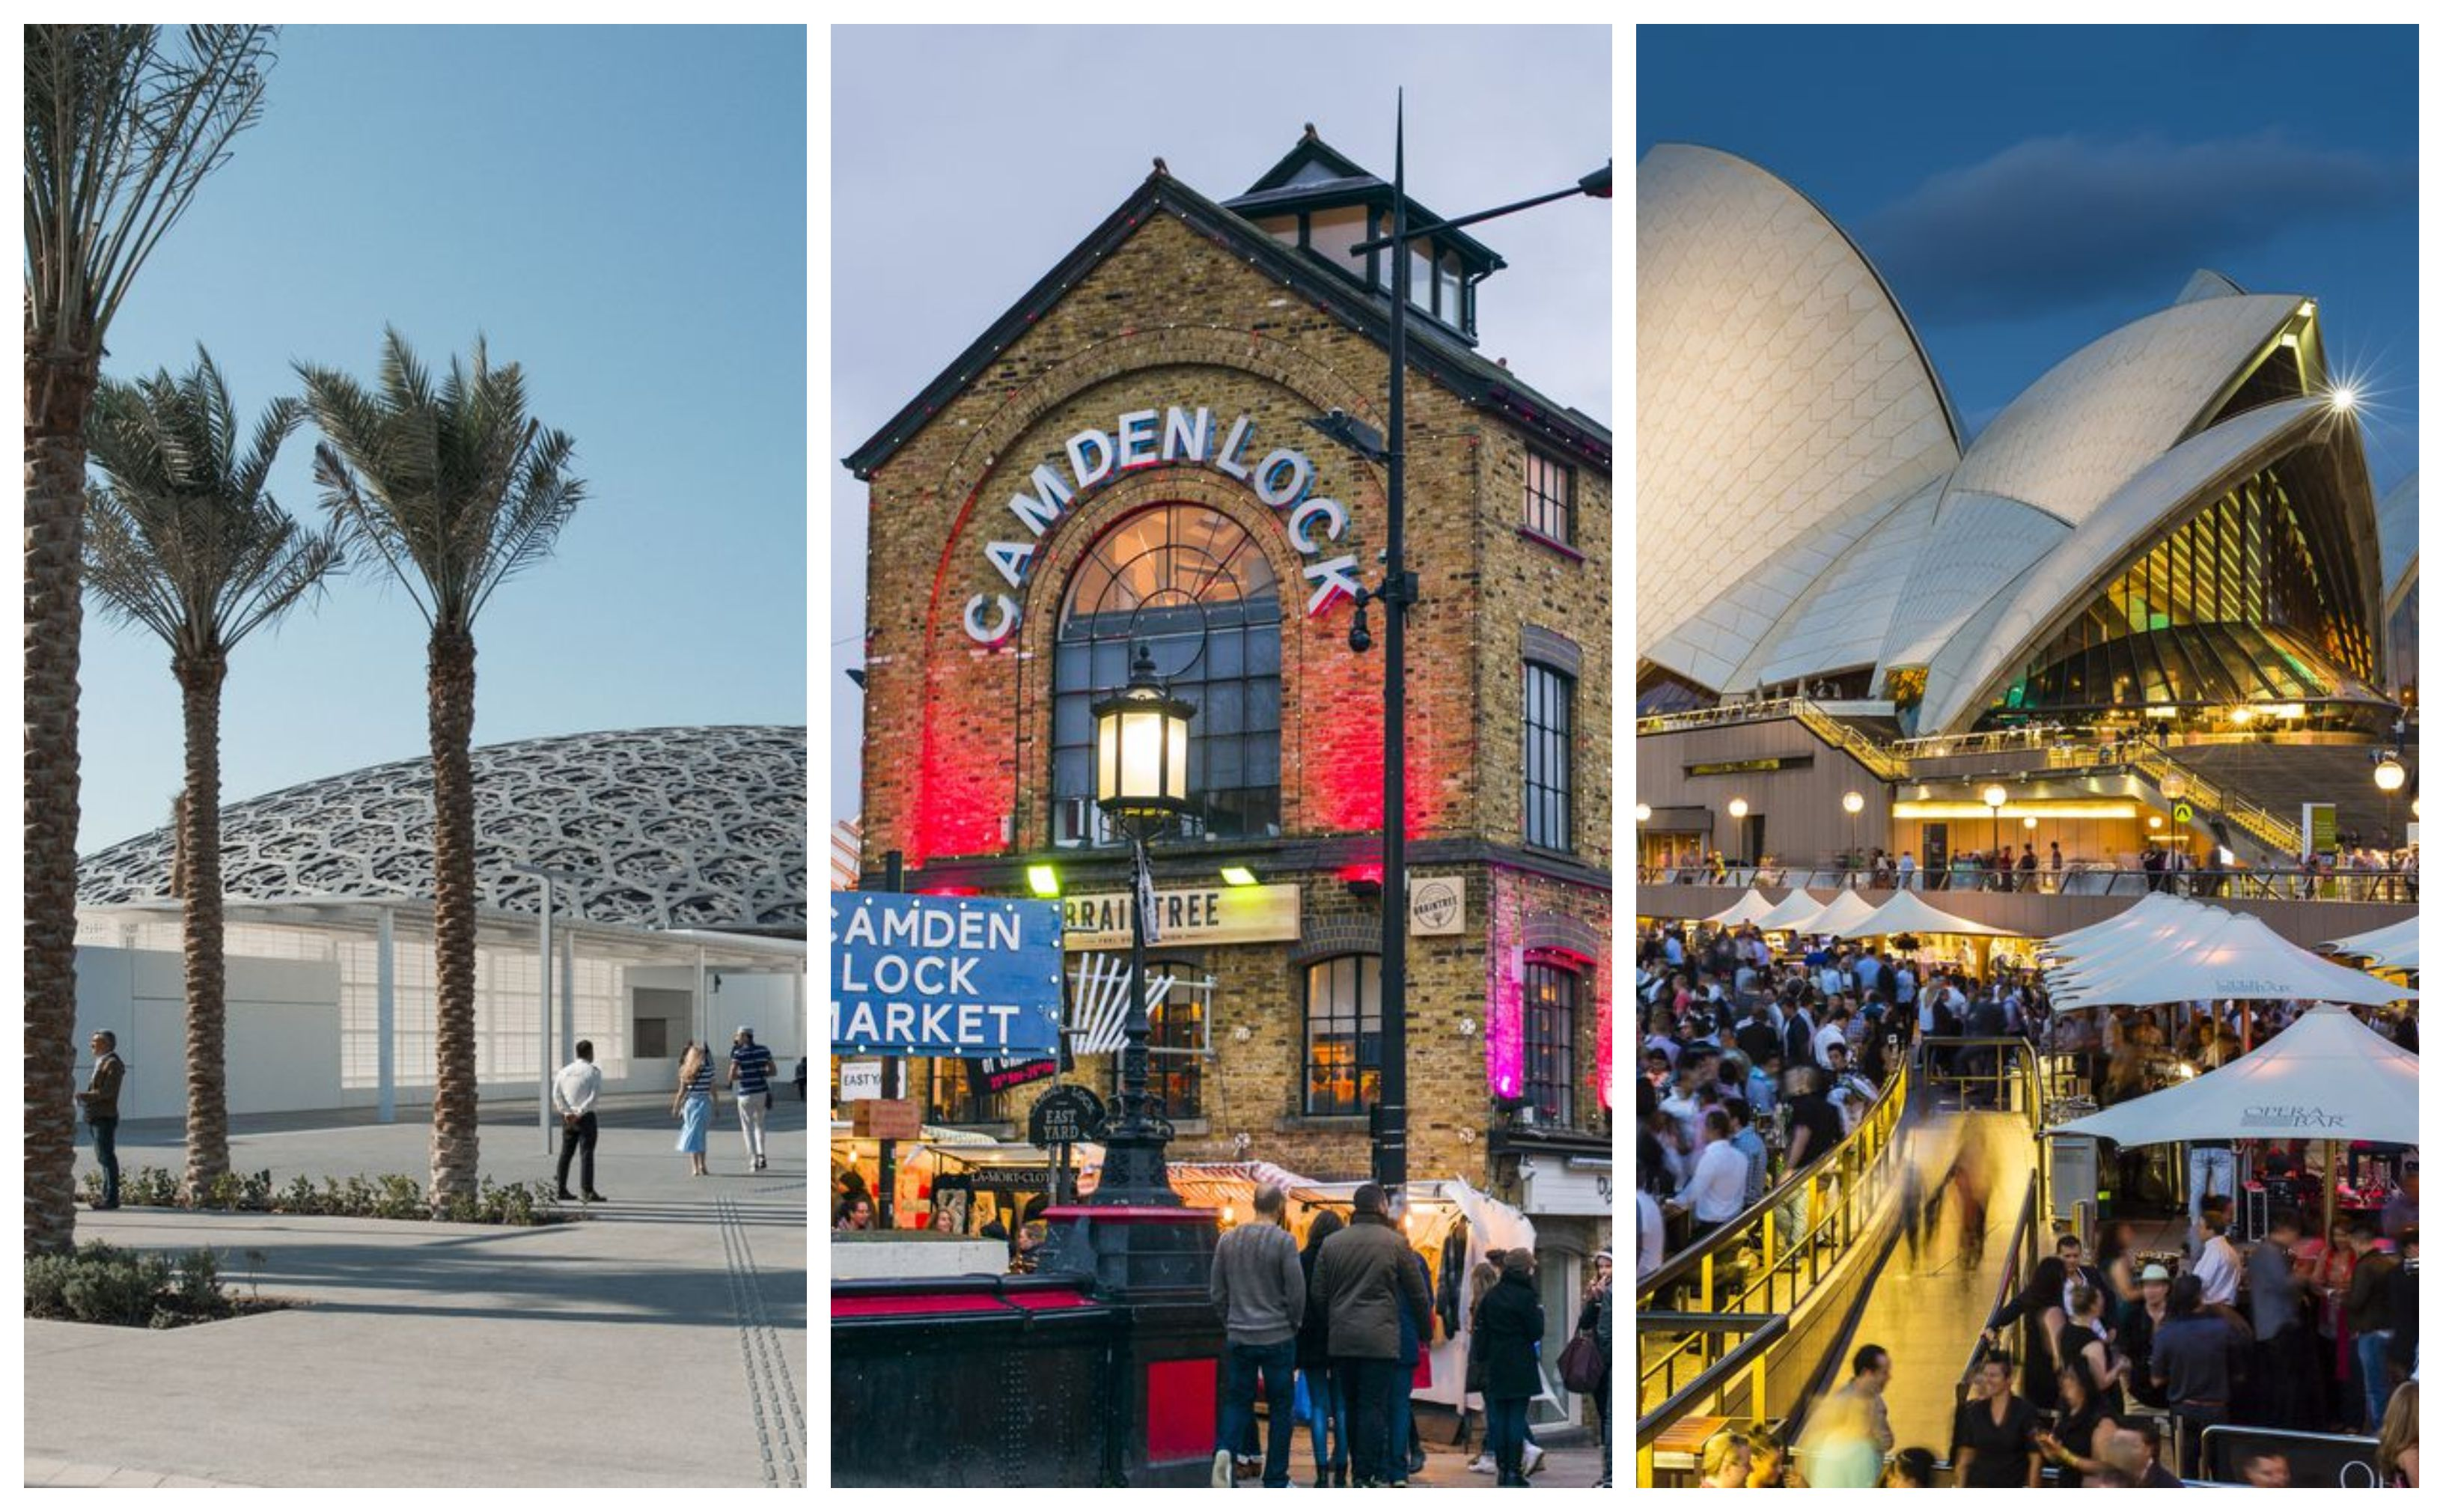 These are the 7 urban wonders of the world